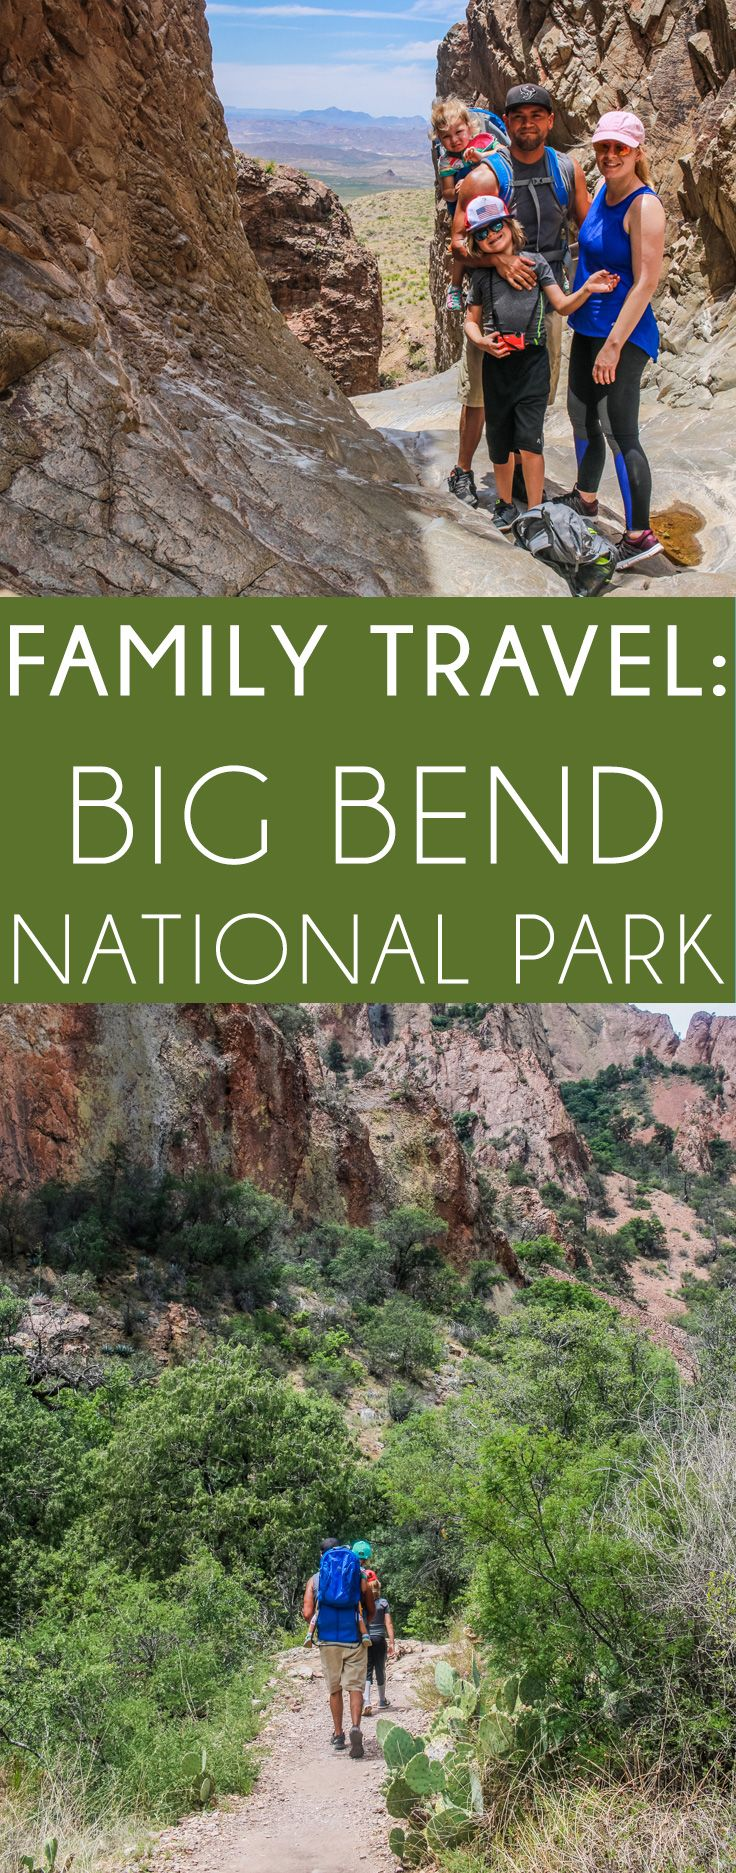 Big Bend National Park in Texas Trip! Our family travel to Big Bend; Everything from where we stayed, what we hiked, what we brought to eat. Our trip to Big Bend with a toddler & kid. A realistic & family friendly guide for Big Bend National Park & what trails our family took. PS - Window Trail is a must! ;)